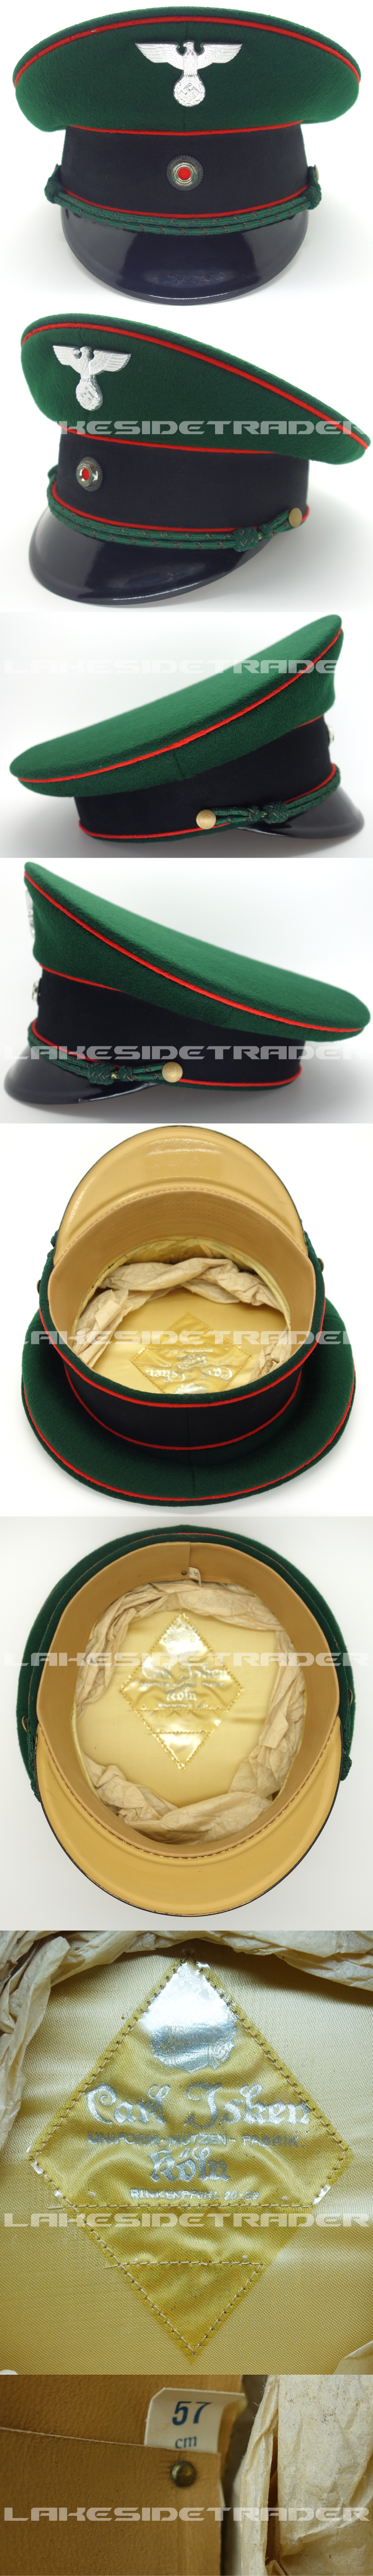 Justice Official Visor Cap by Carl Isken